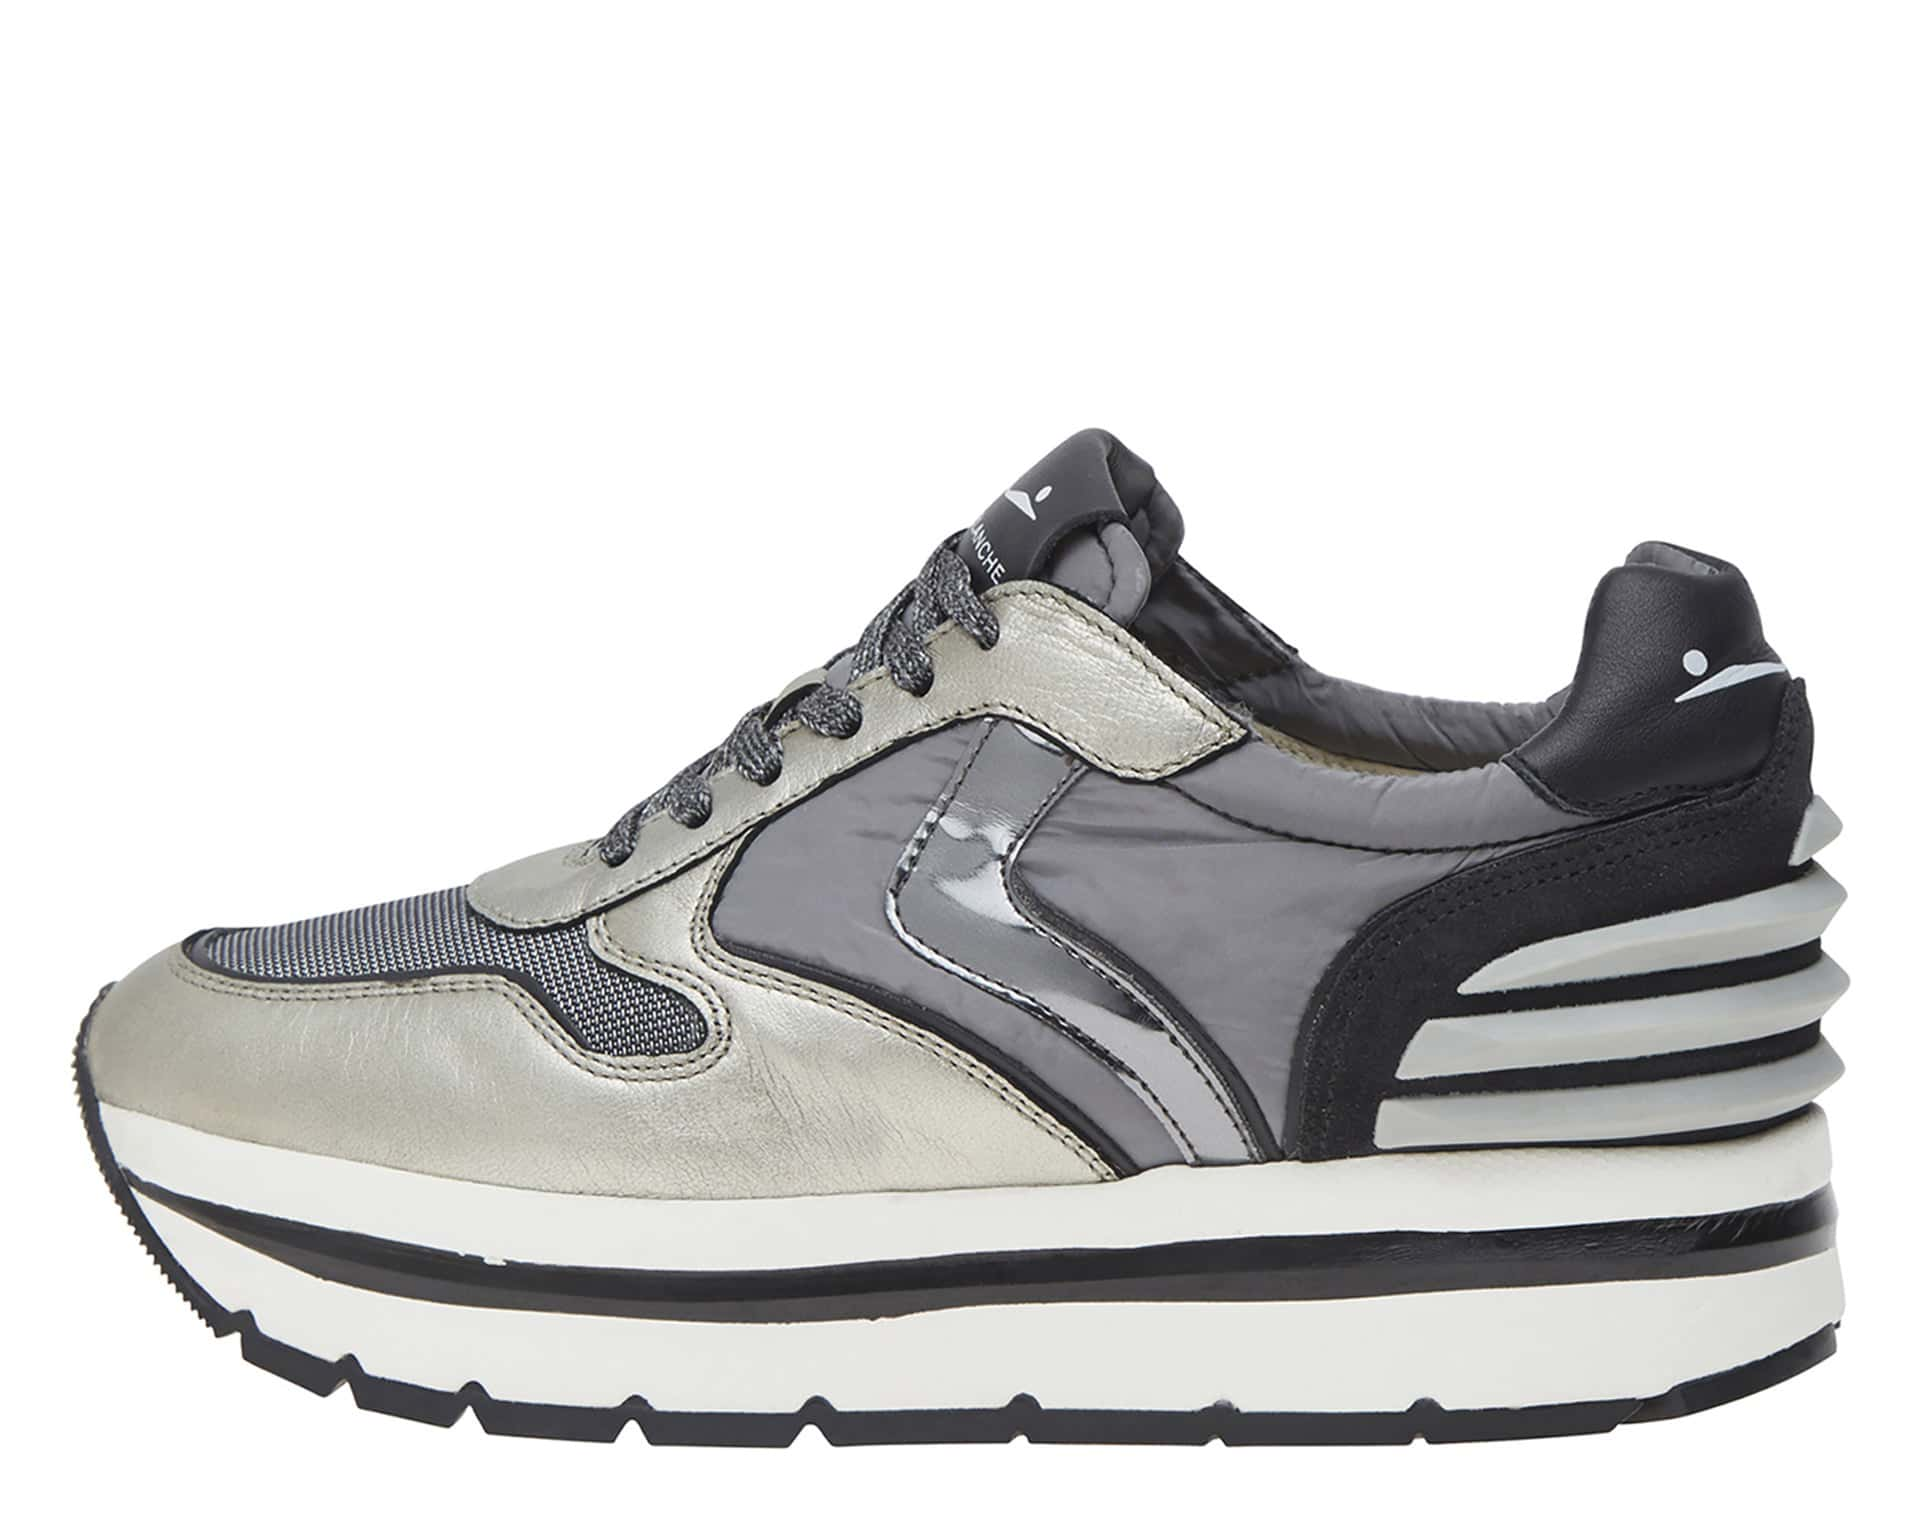 MAY POWER - LEATHER, MESH AND NYLON SNEAKERS - SILVER AND GREY